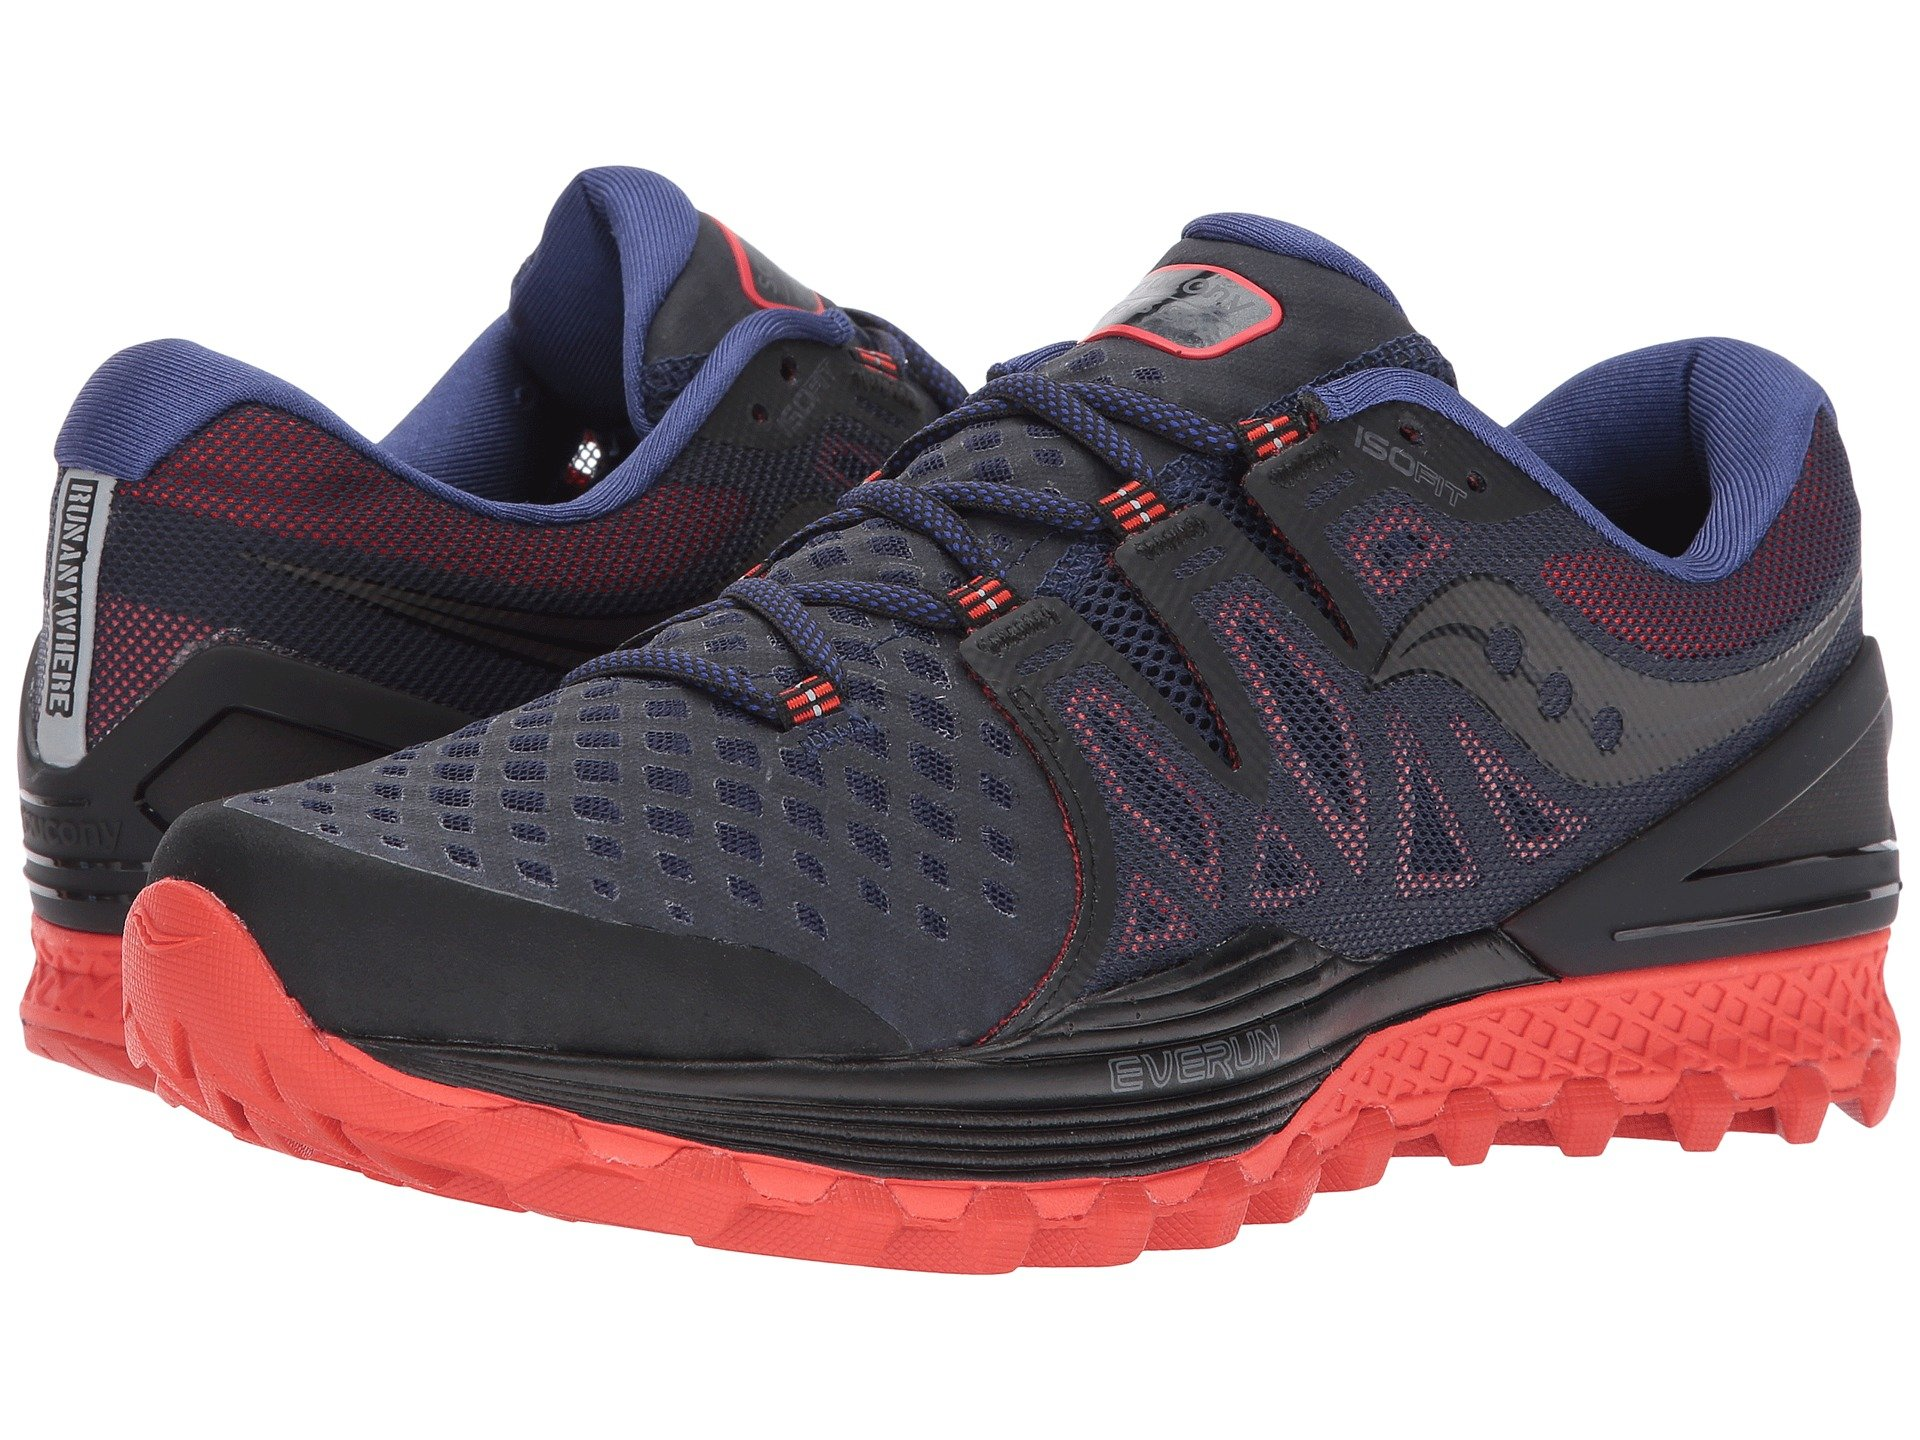 SAUCONY XODUS ISO 2 – SHOE REVIEW Footpro